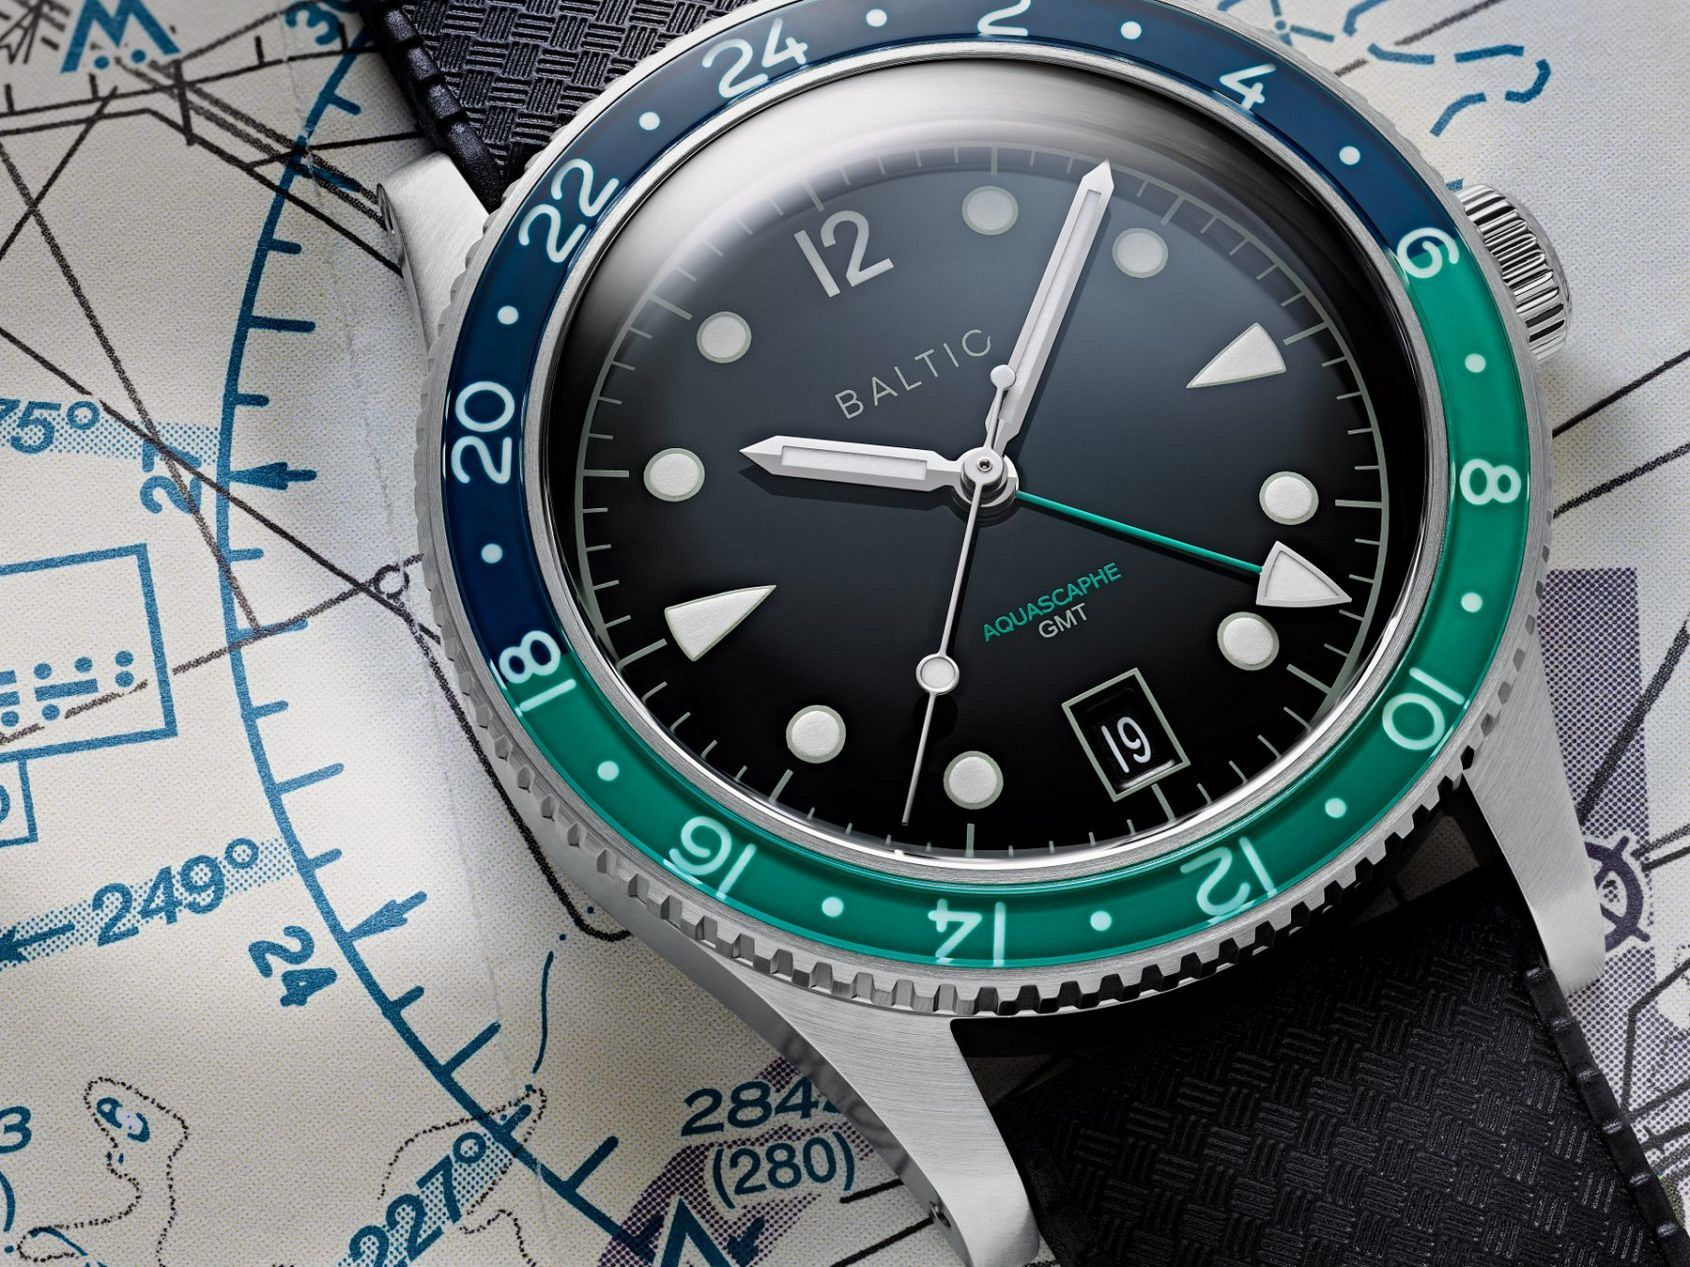 MICRO MONDAYS: Was the Baltic Aquascaphe GMT the freshest microbrand travel watch of 2020?